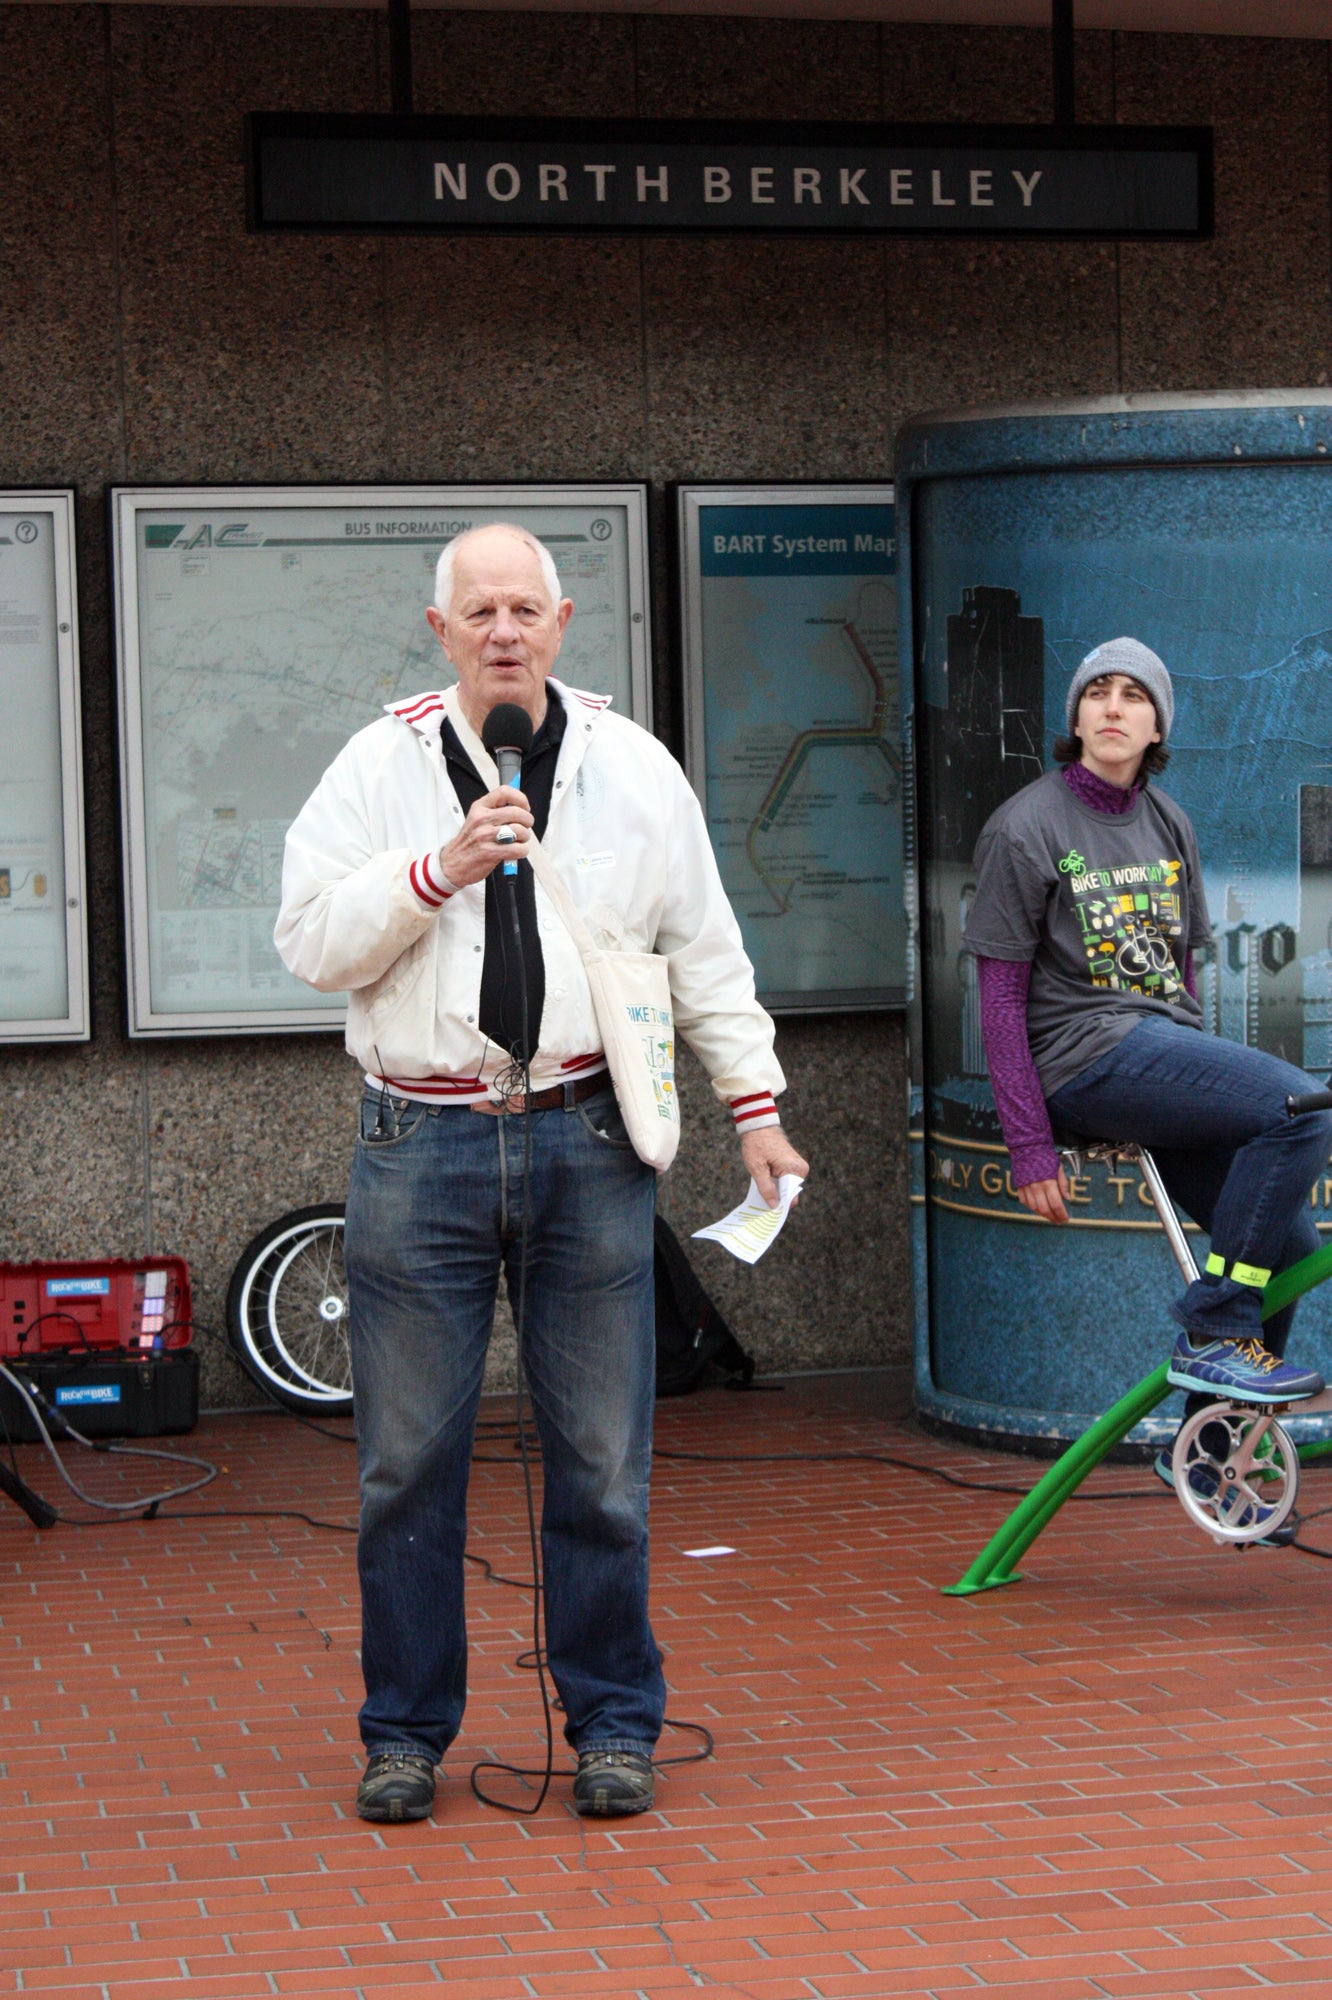 Acting in his role as Mayor of Berkeley, MTC Commissioner Tom Bates started his morning by opening a new bike path at University and West Street, then cycled to the North Berkeley BART station where he announced plans to overhaul the city's Bicycle Plan w